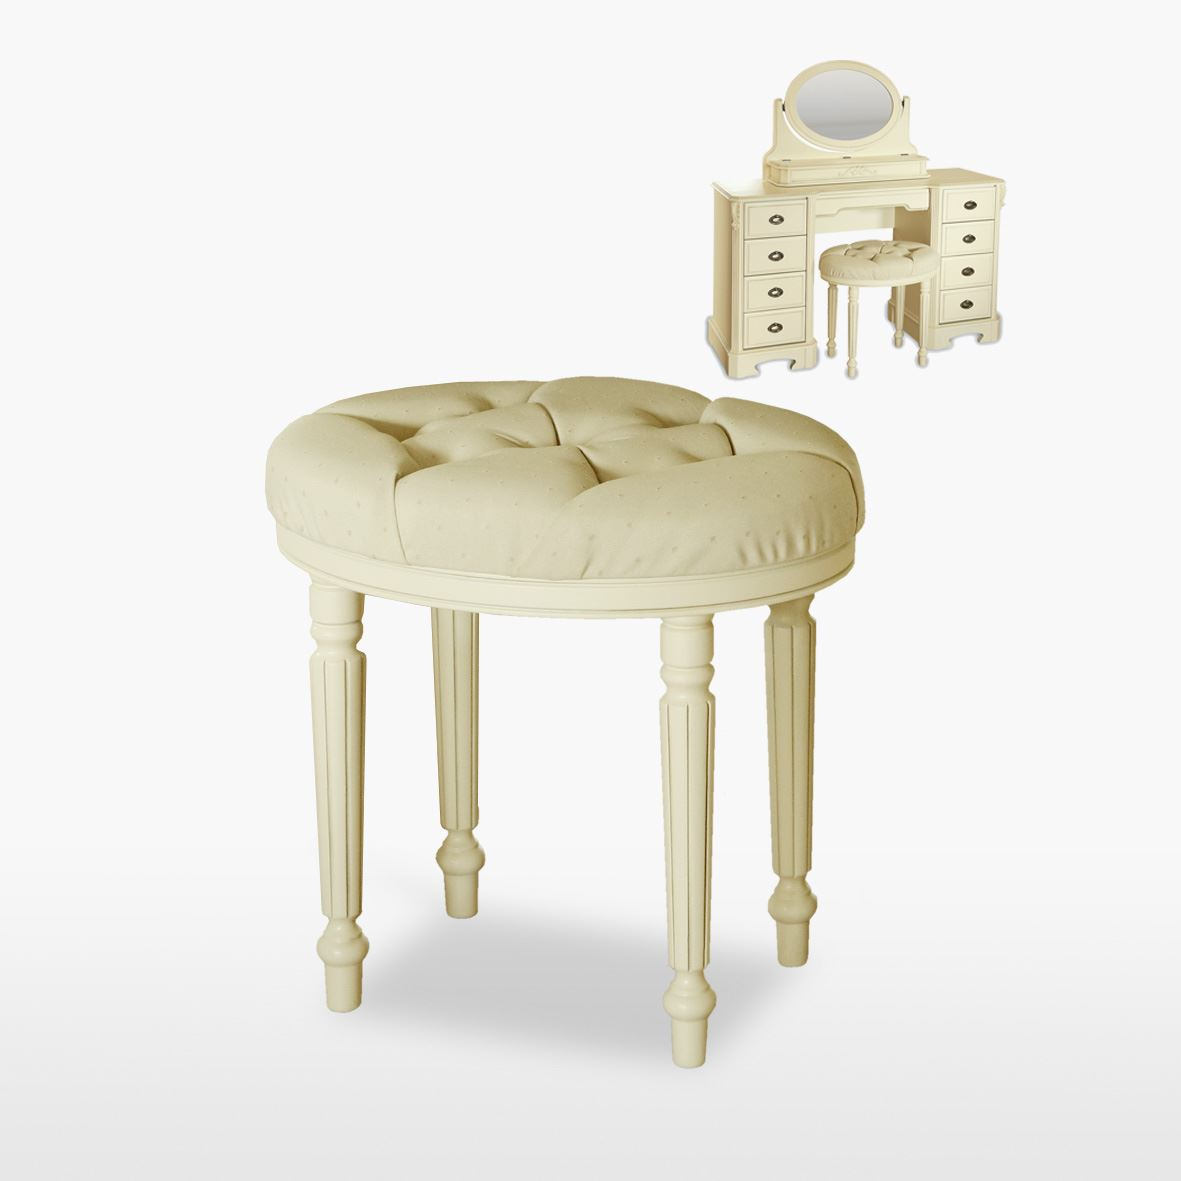 Amore' - Oval Stool - ABJ50